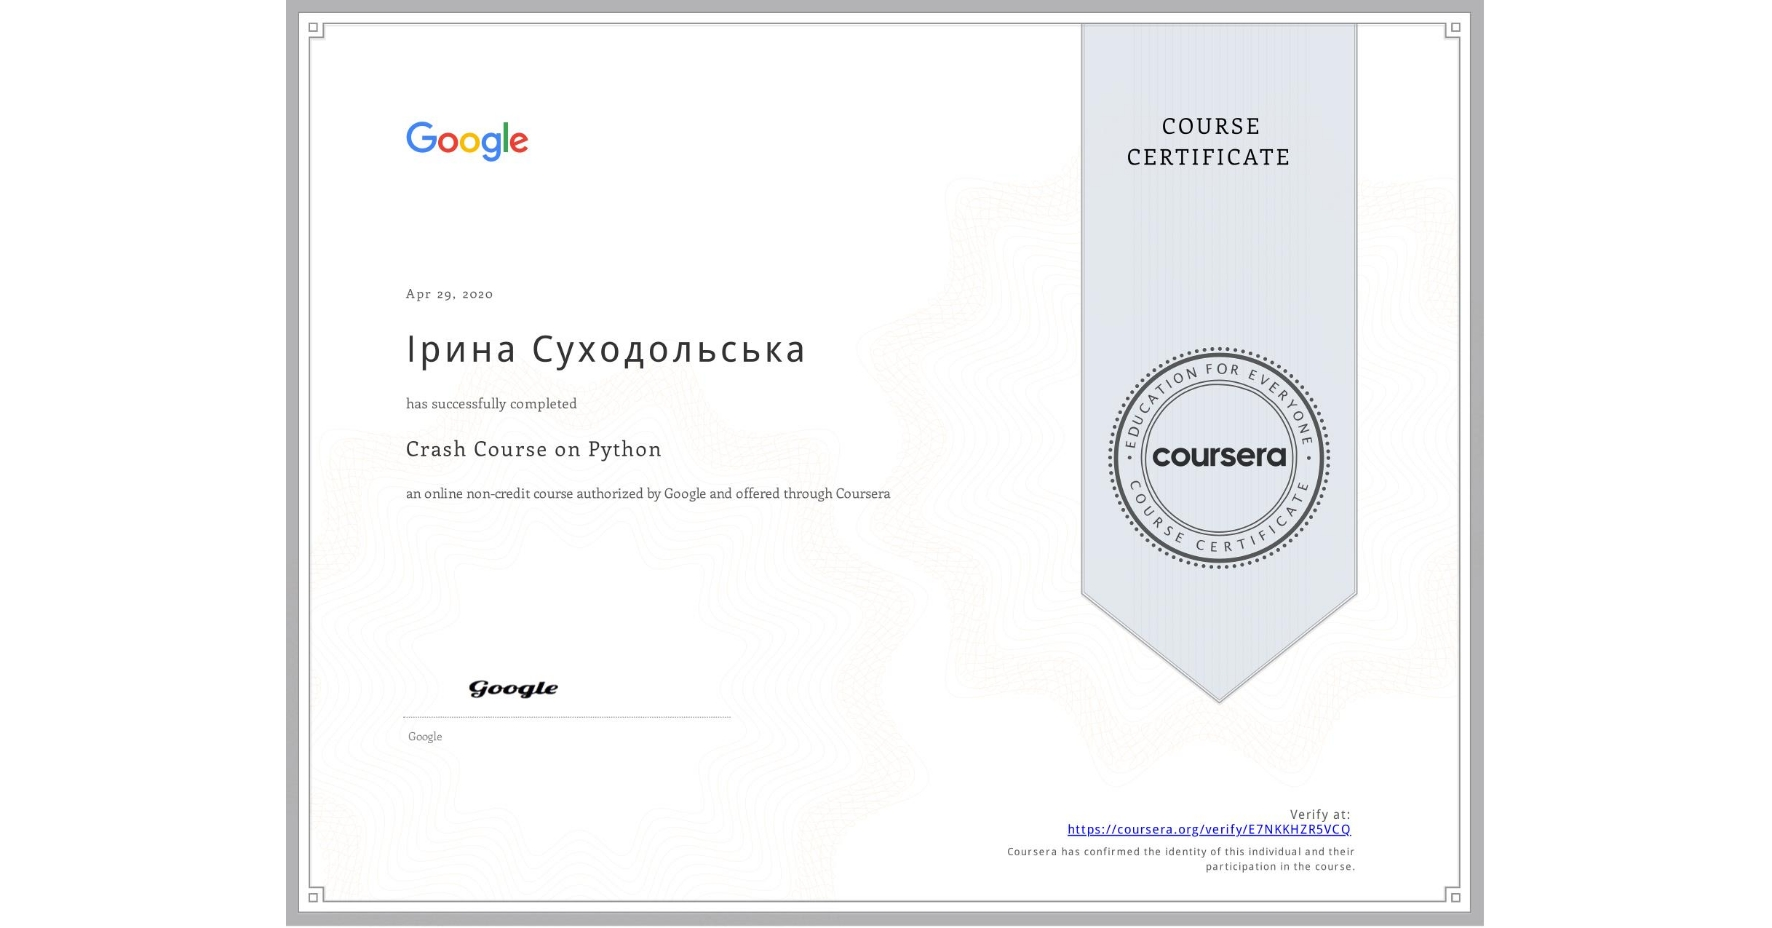 View certificate for Ірина Суходольська, Crash Course on Python, an online non-credit course authorized by Google and offered through Coursera